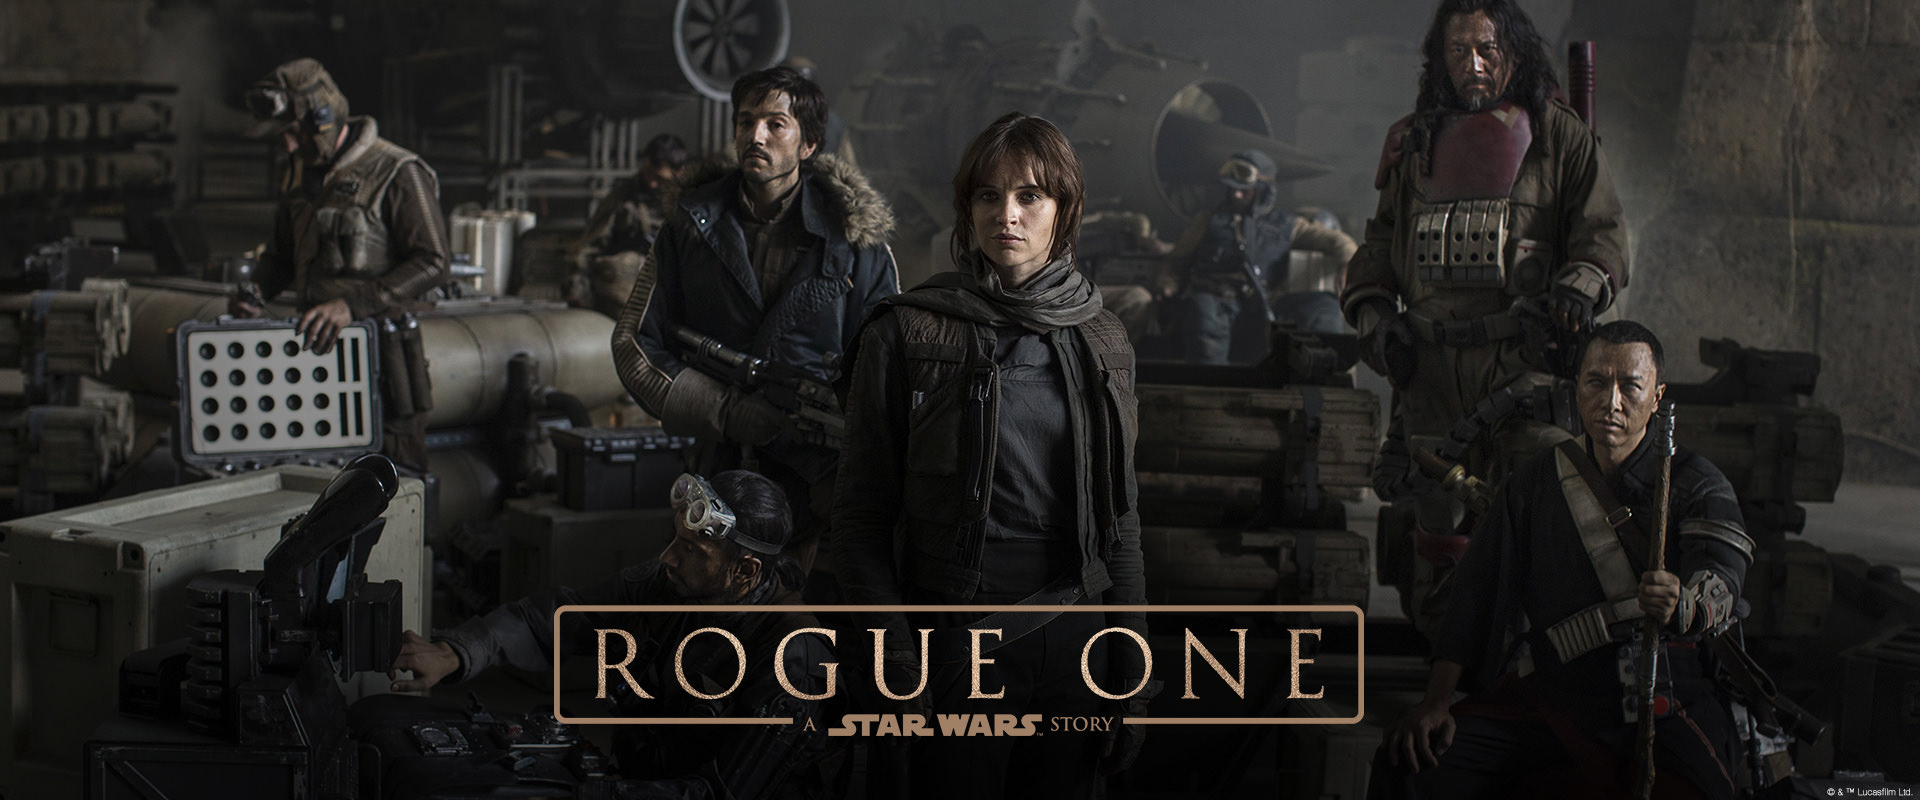 rogueone_landing-page-3-1